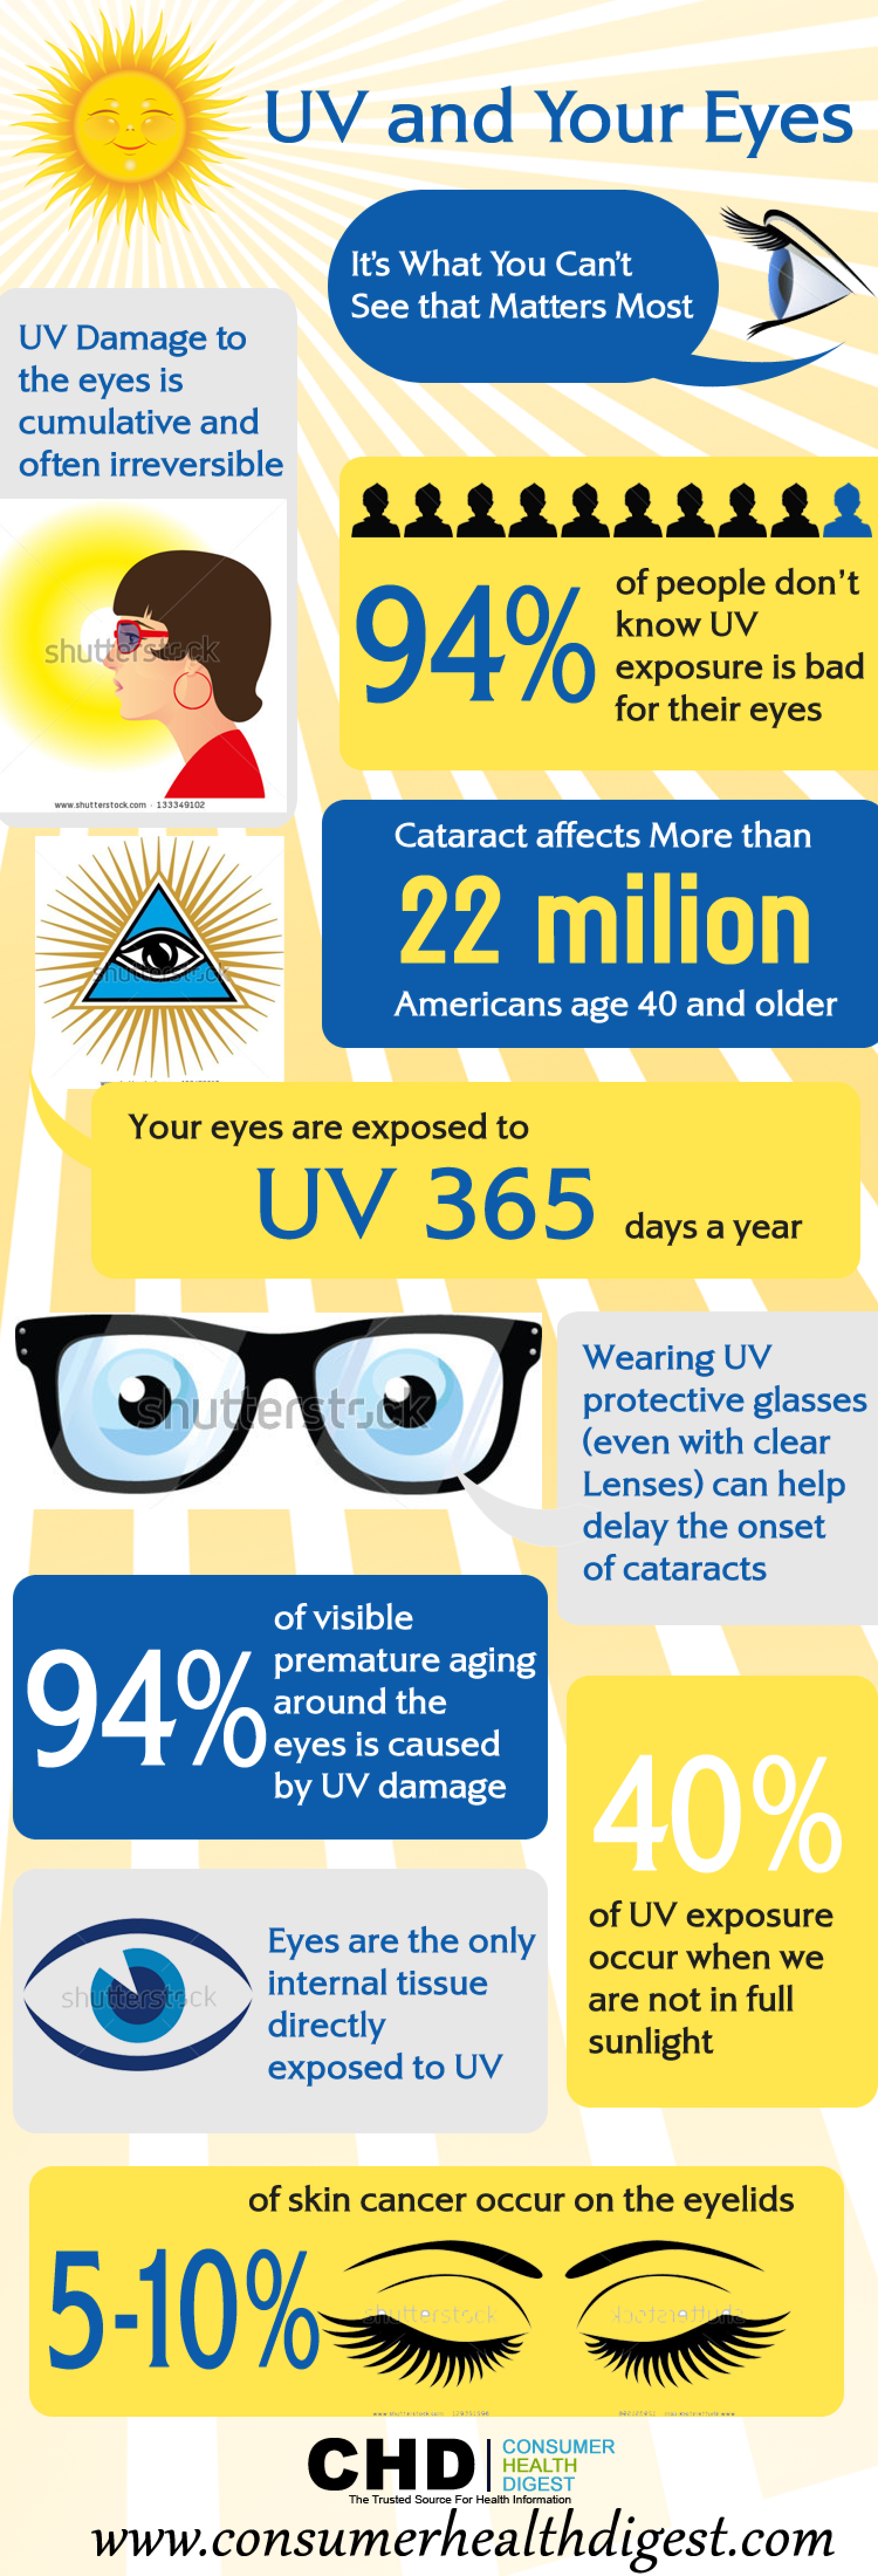 UV Rays And Your Eyes: Facts And Figures Infographic